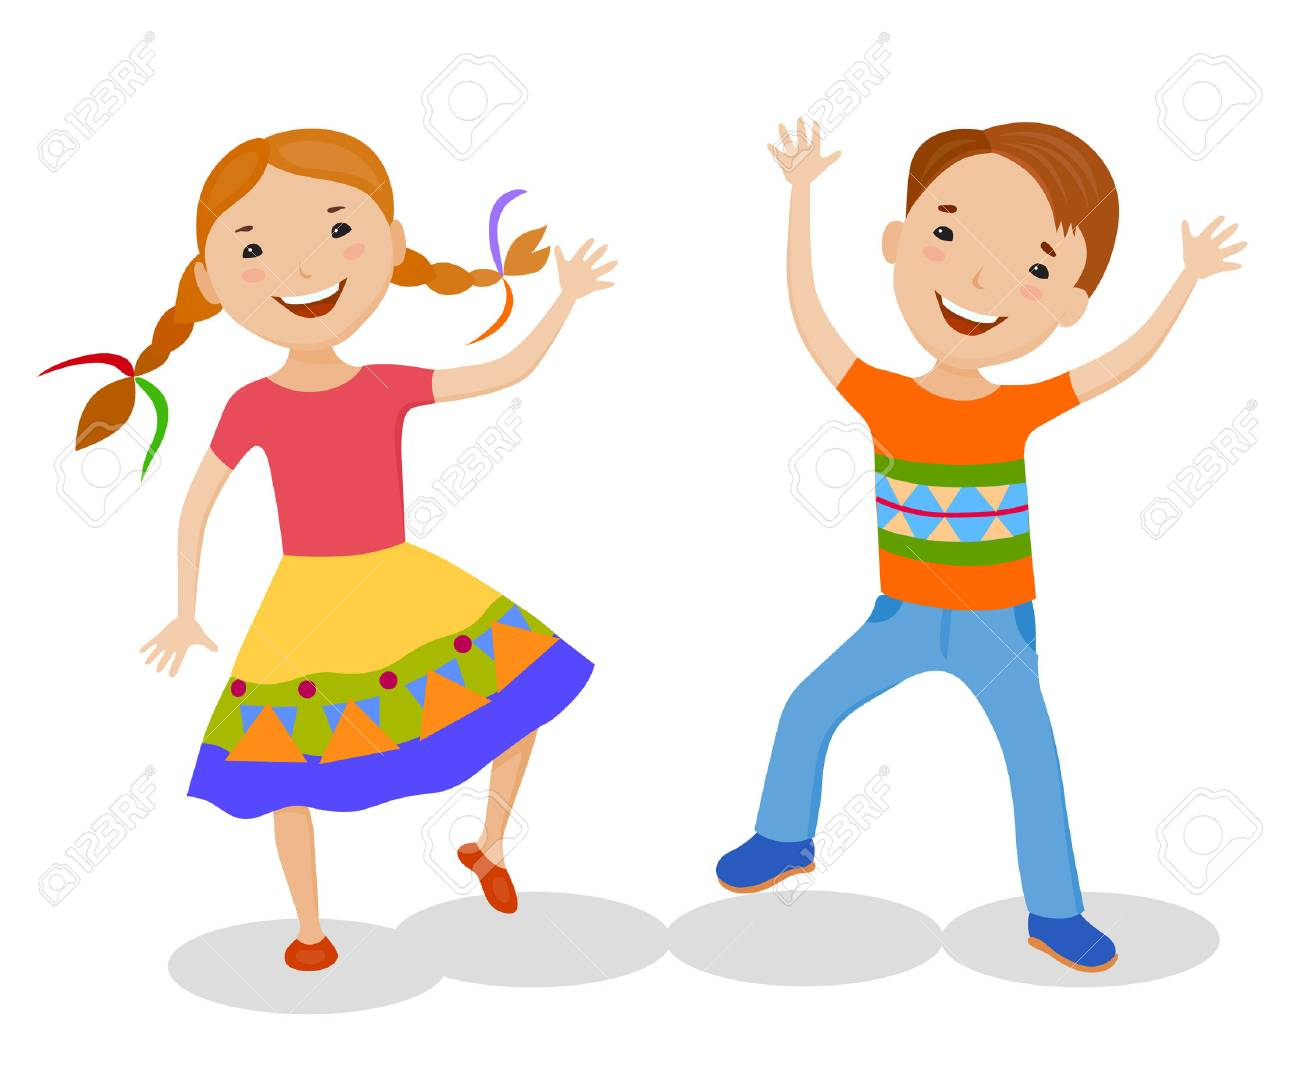 Dancing Of Little Cartoon Fun Kids In Colorful Clothes Royalty Free Cliparts Vectors And Stock Illustration Image 68552132